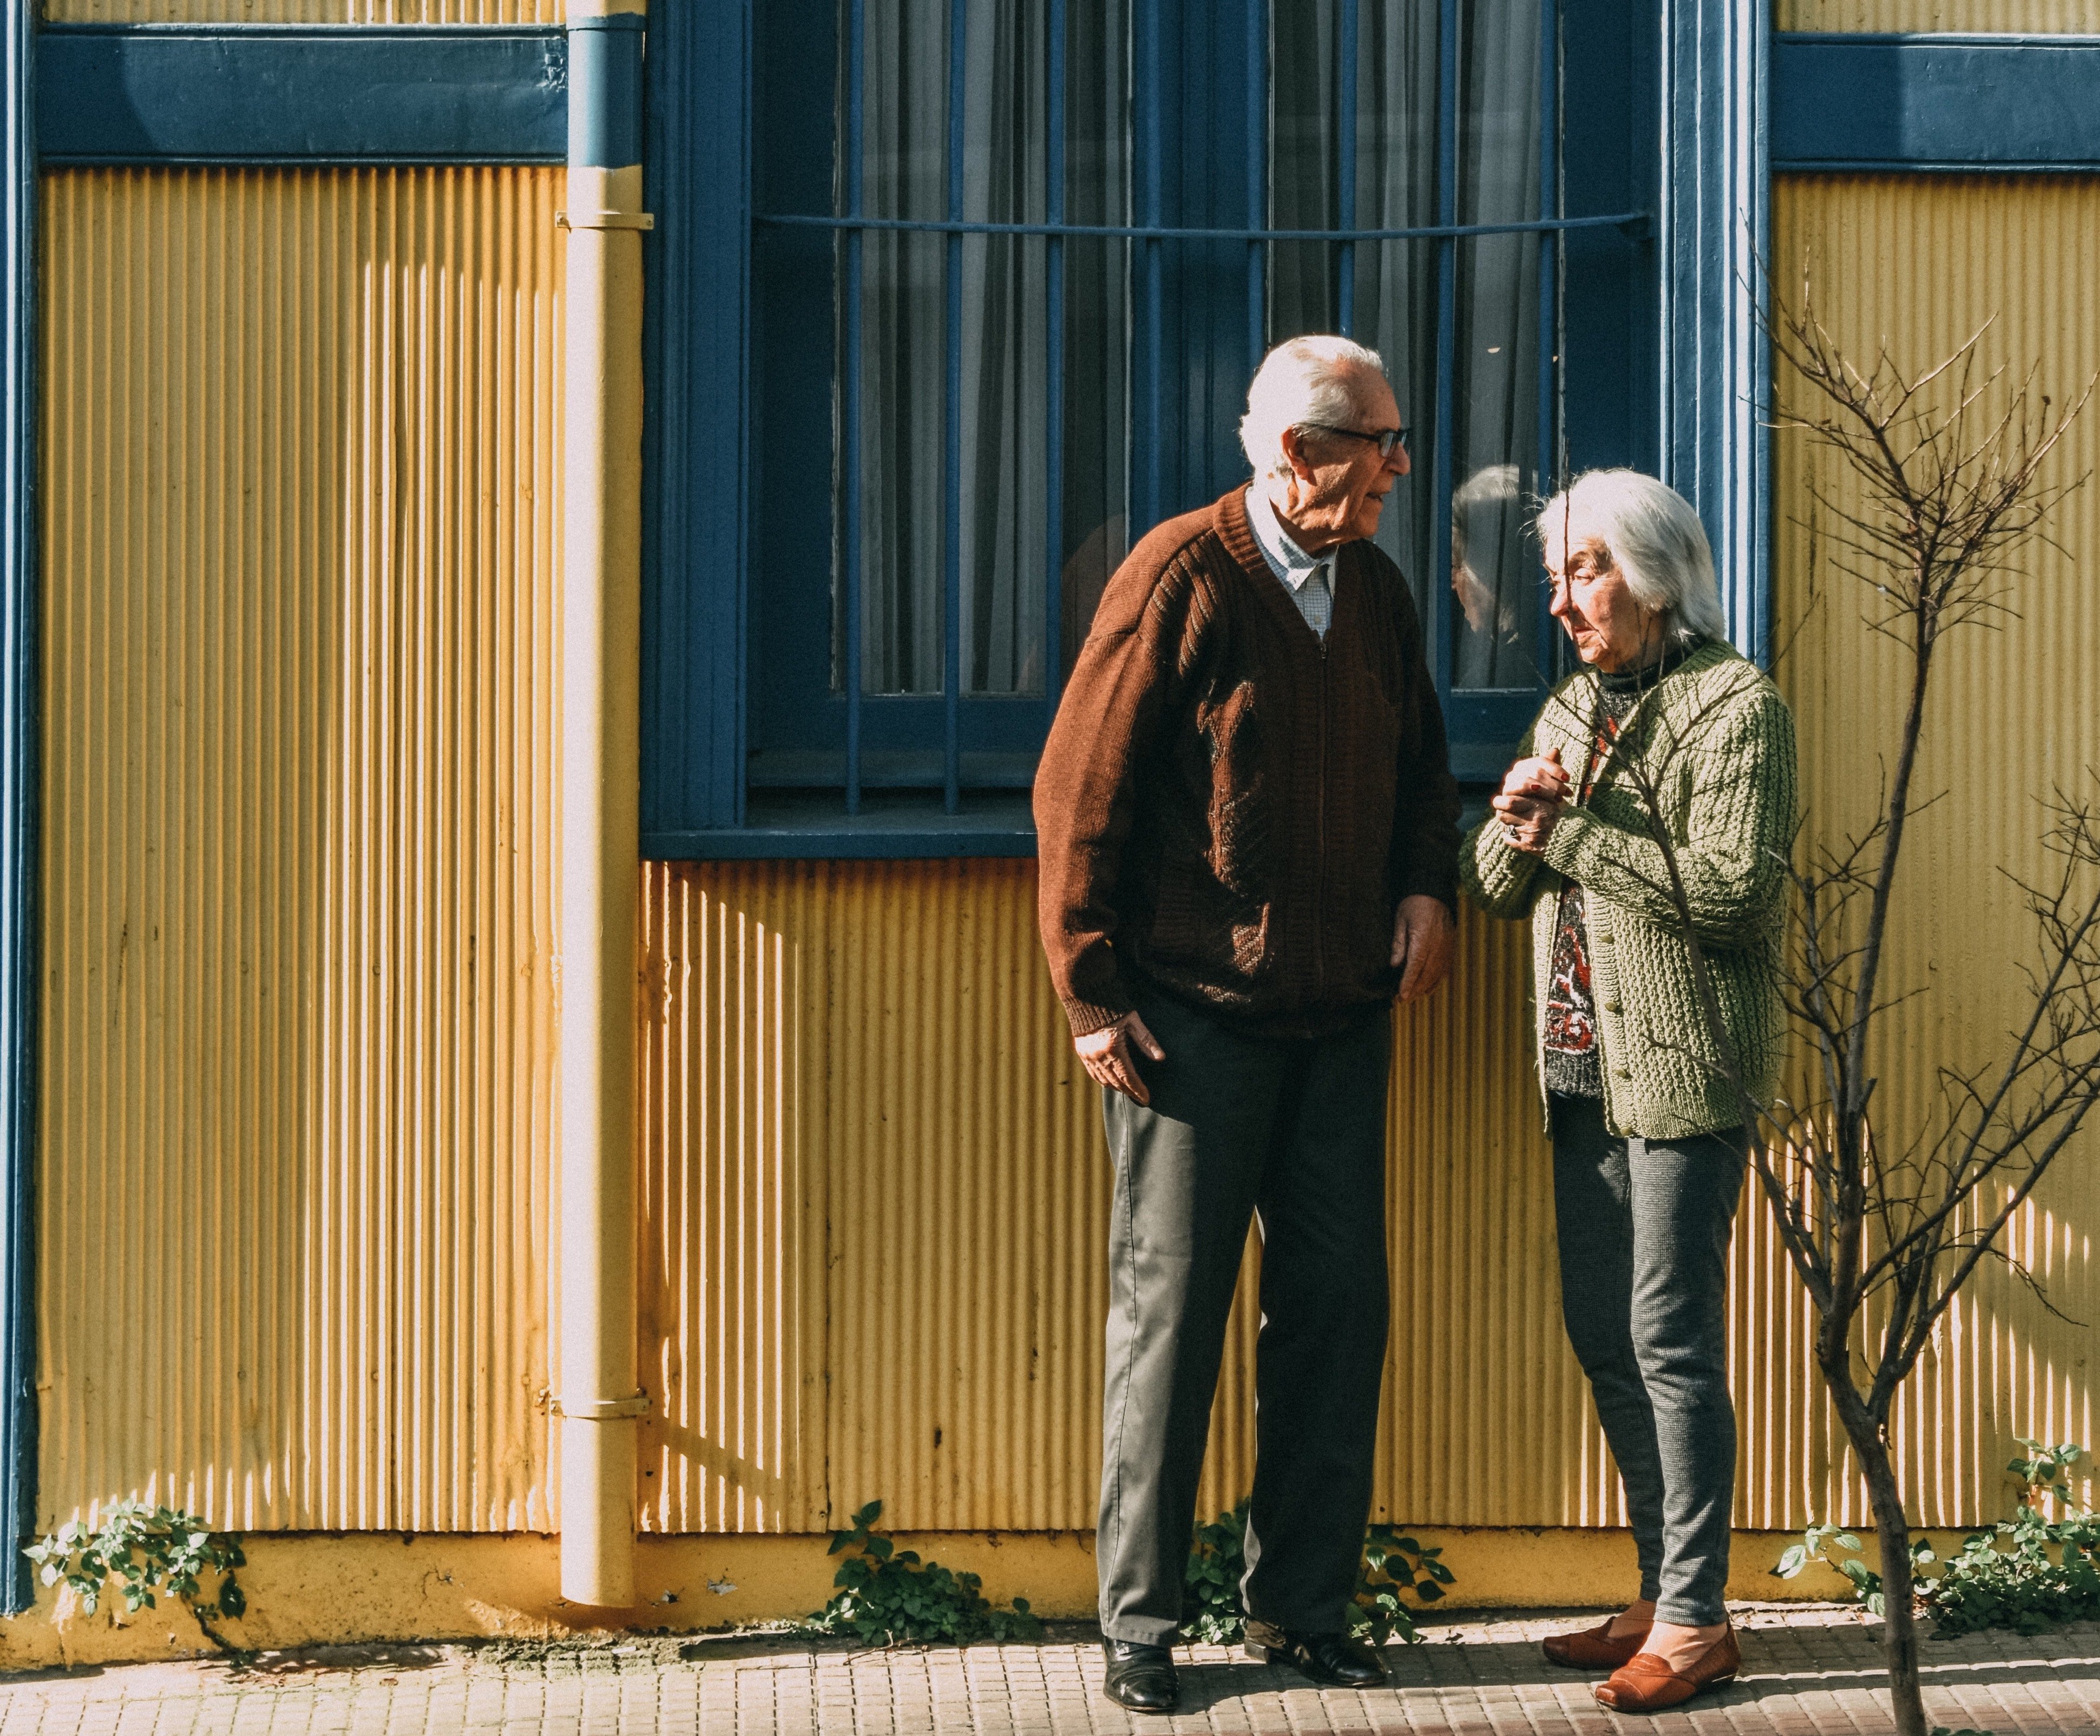 An older man and woman stand in front of buildings window